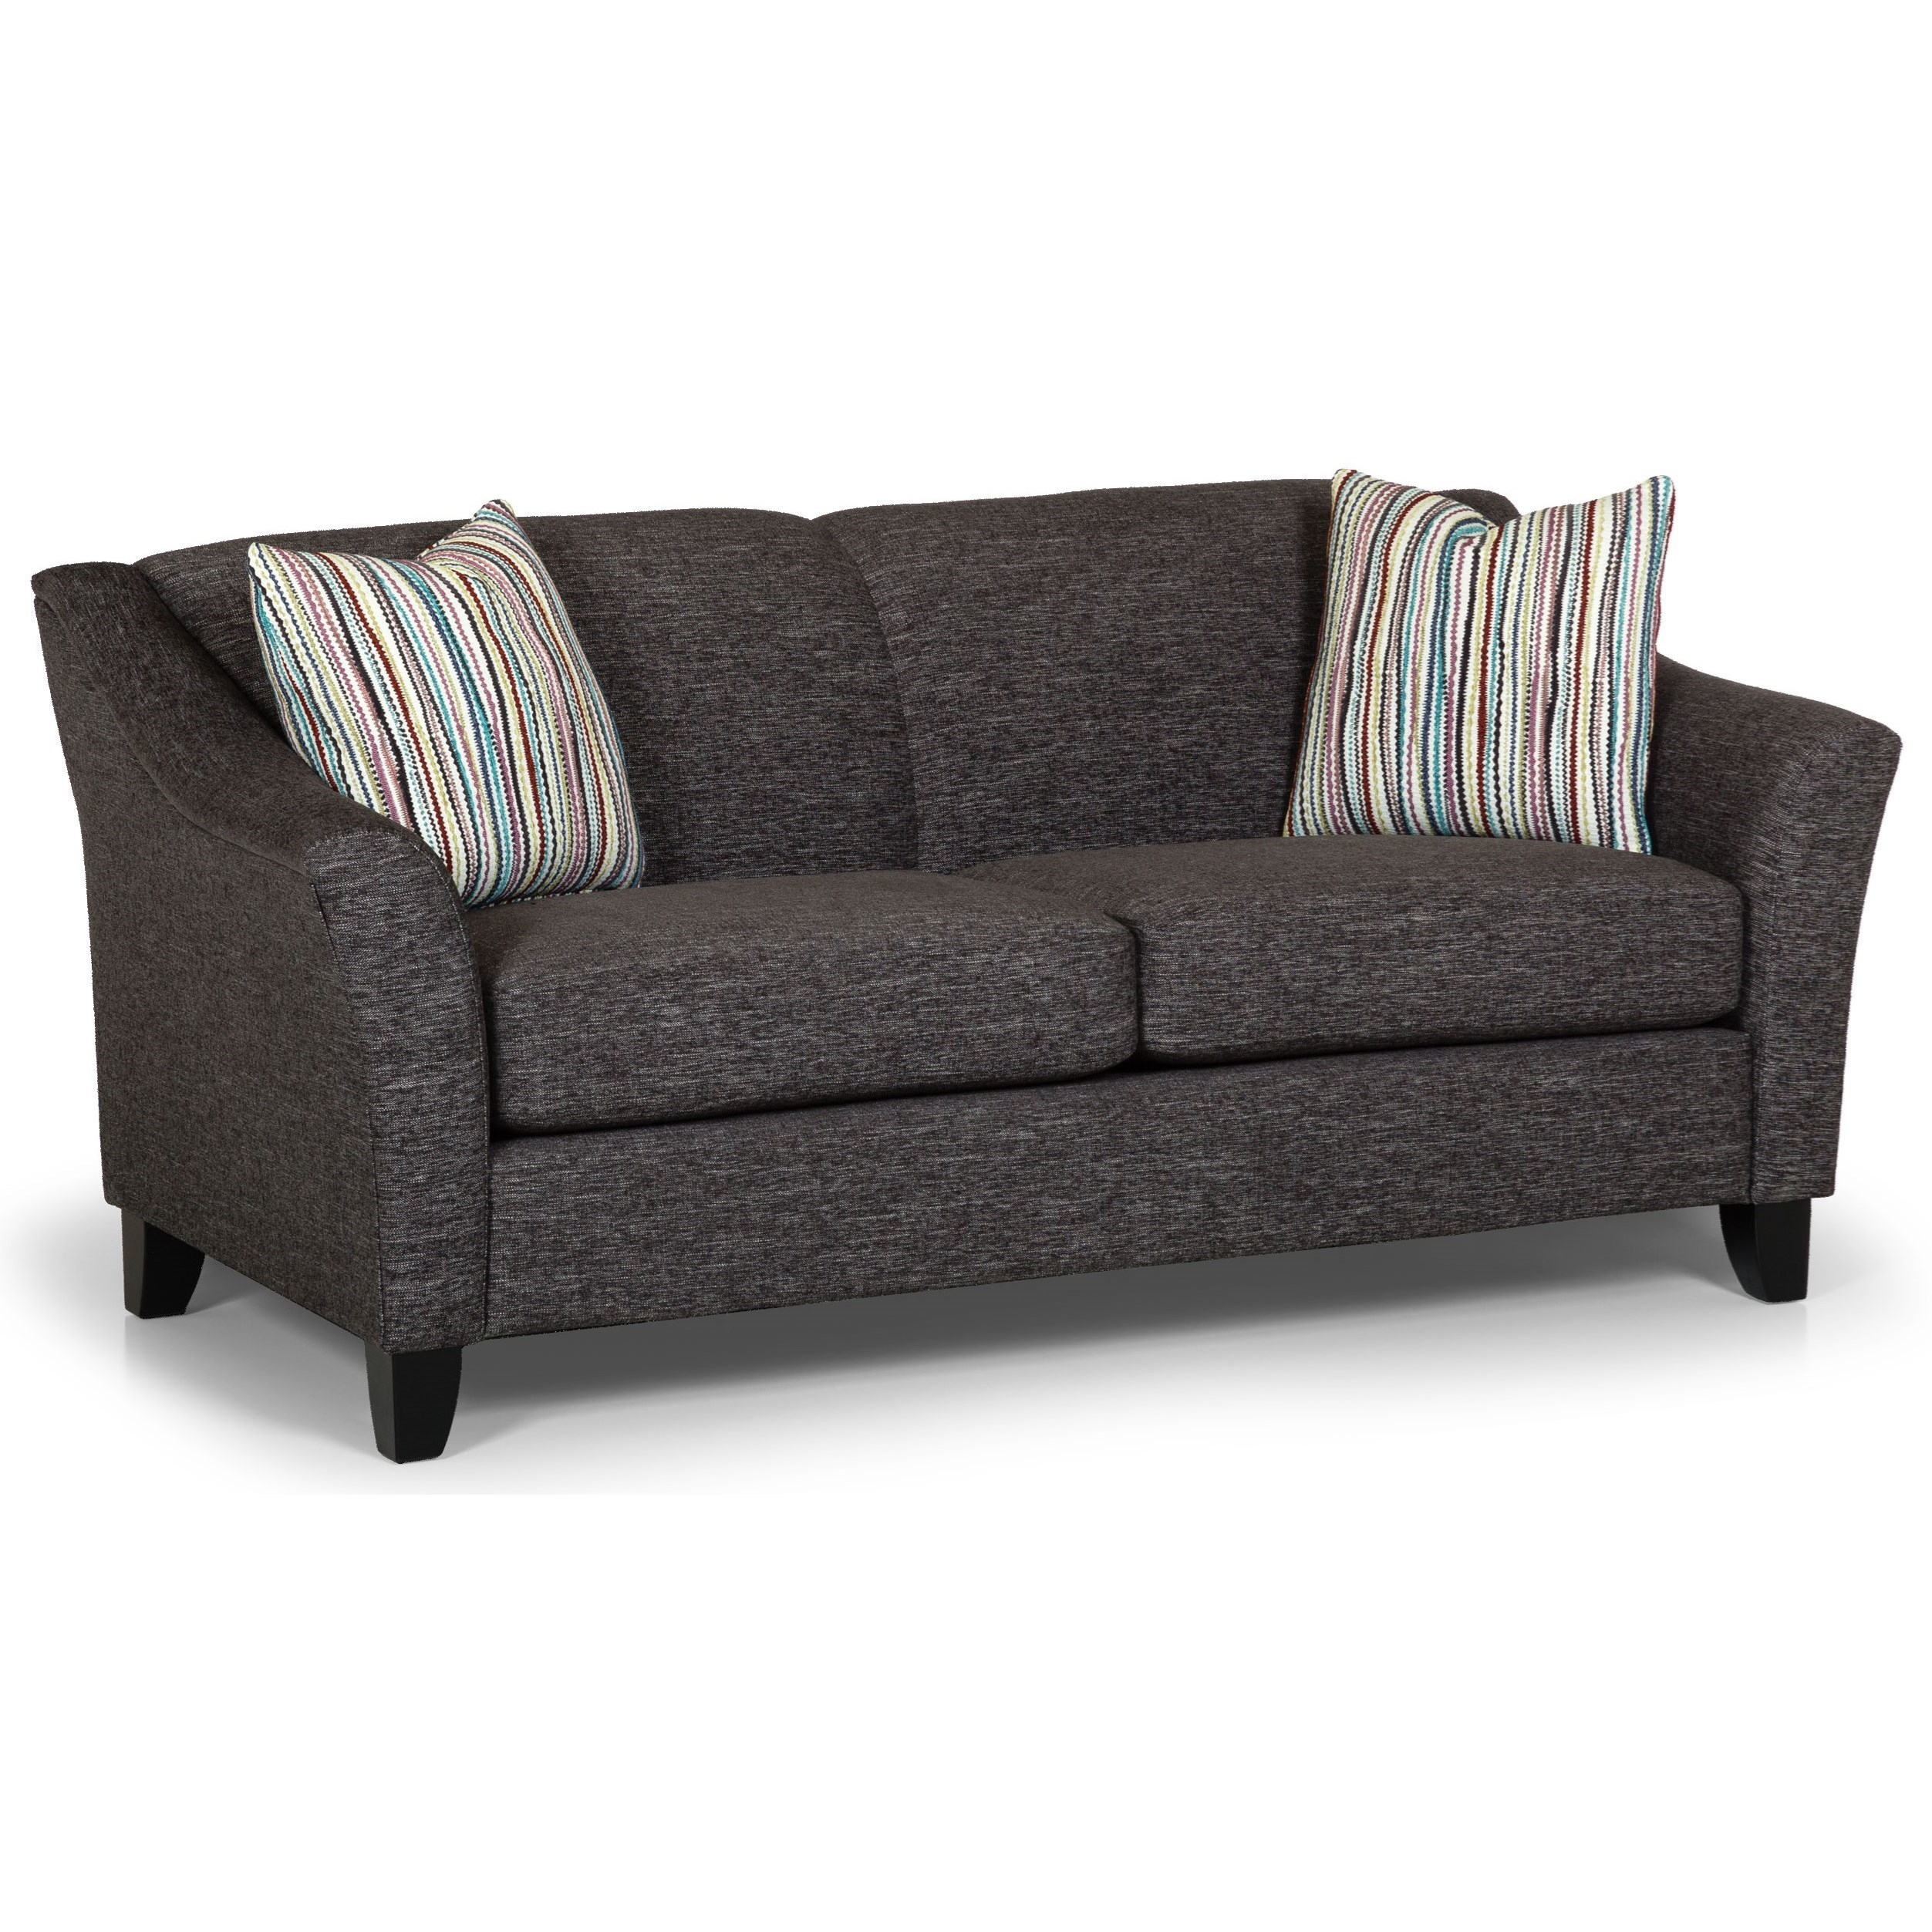 421 Loft Sofa by Sunset Home at Sadler's Home Furnishings